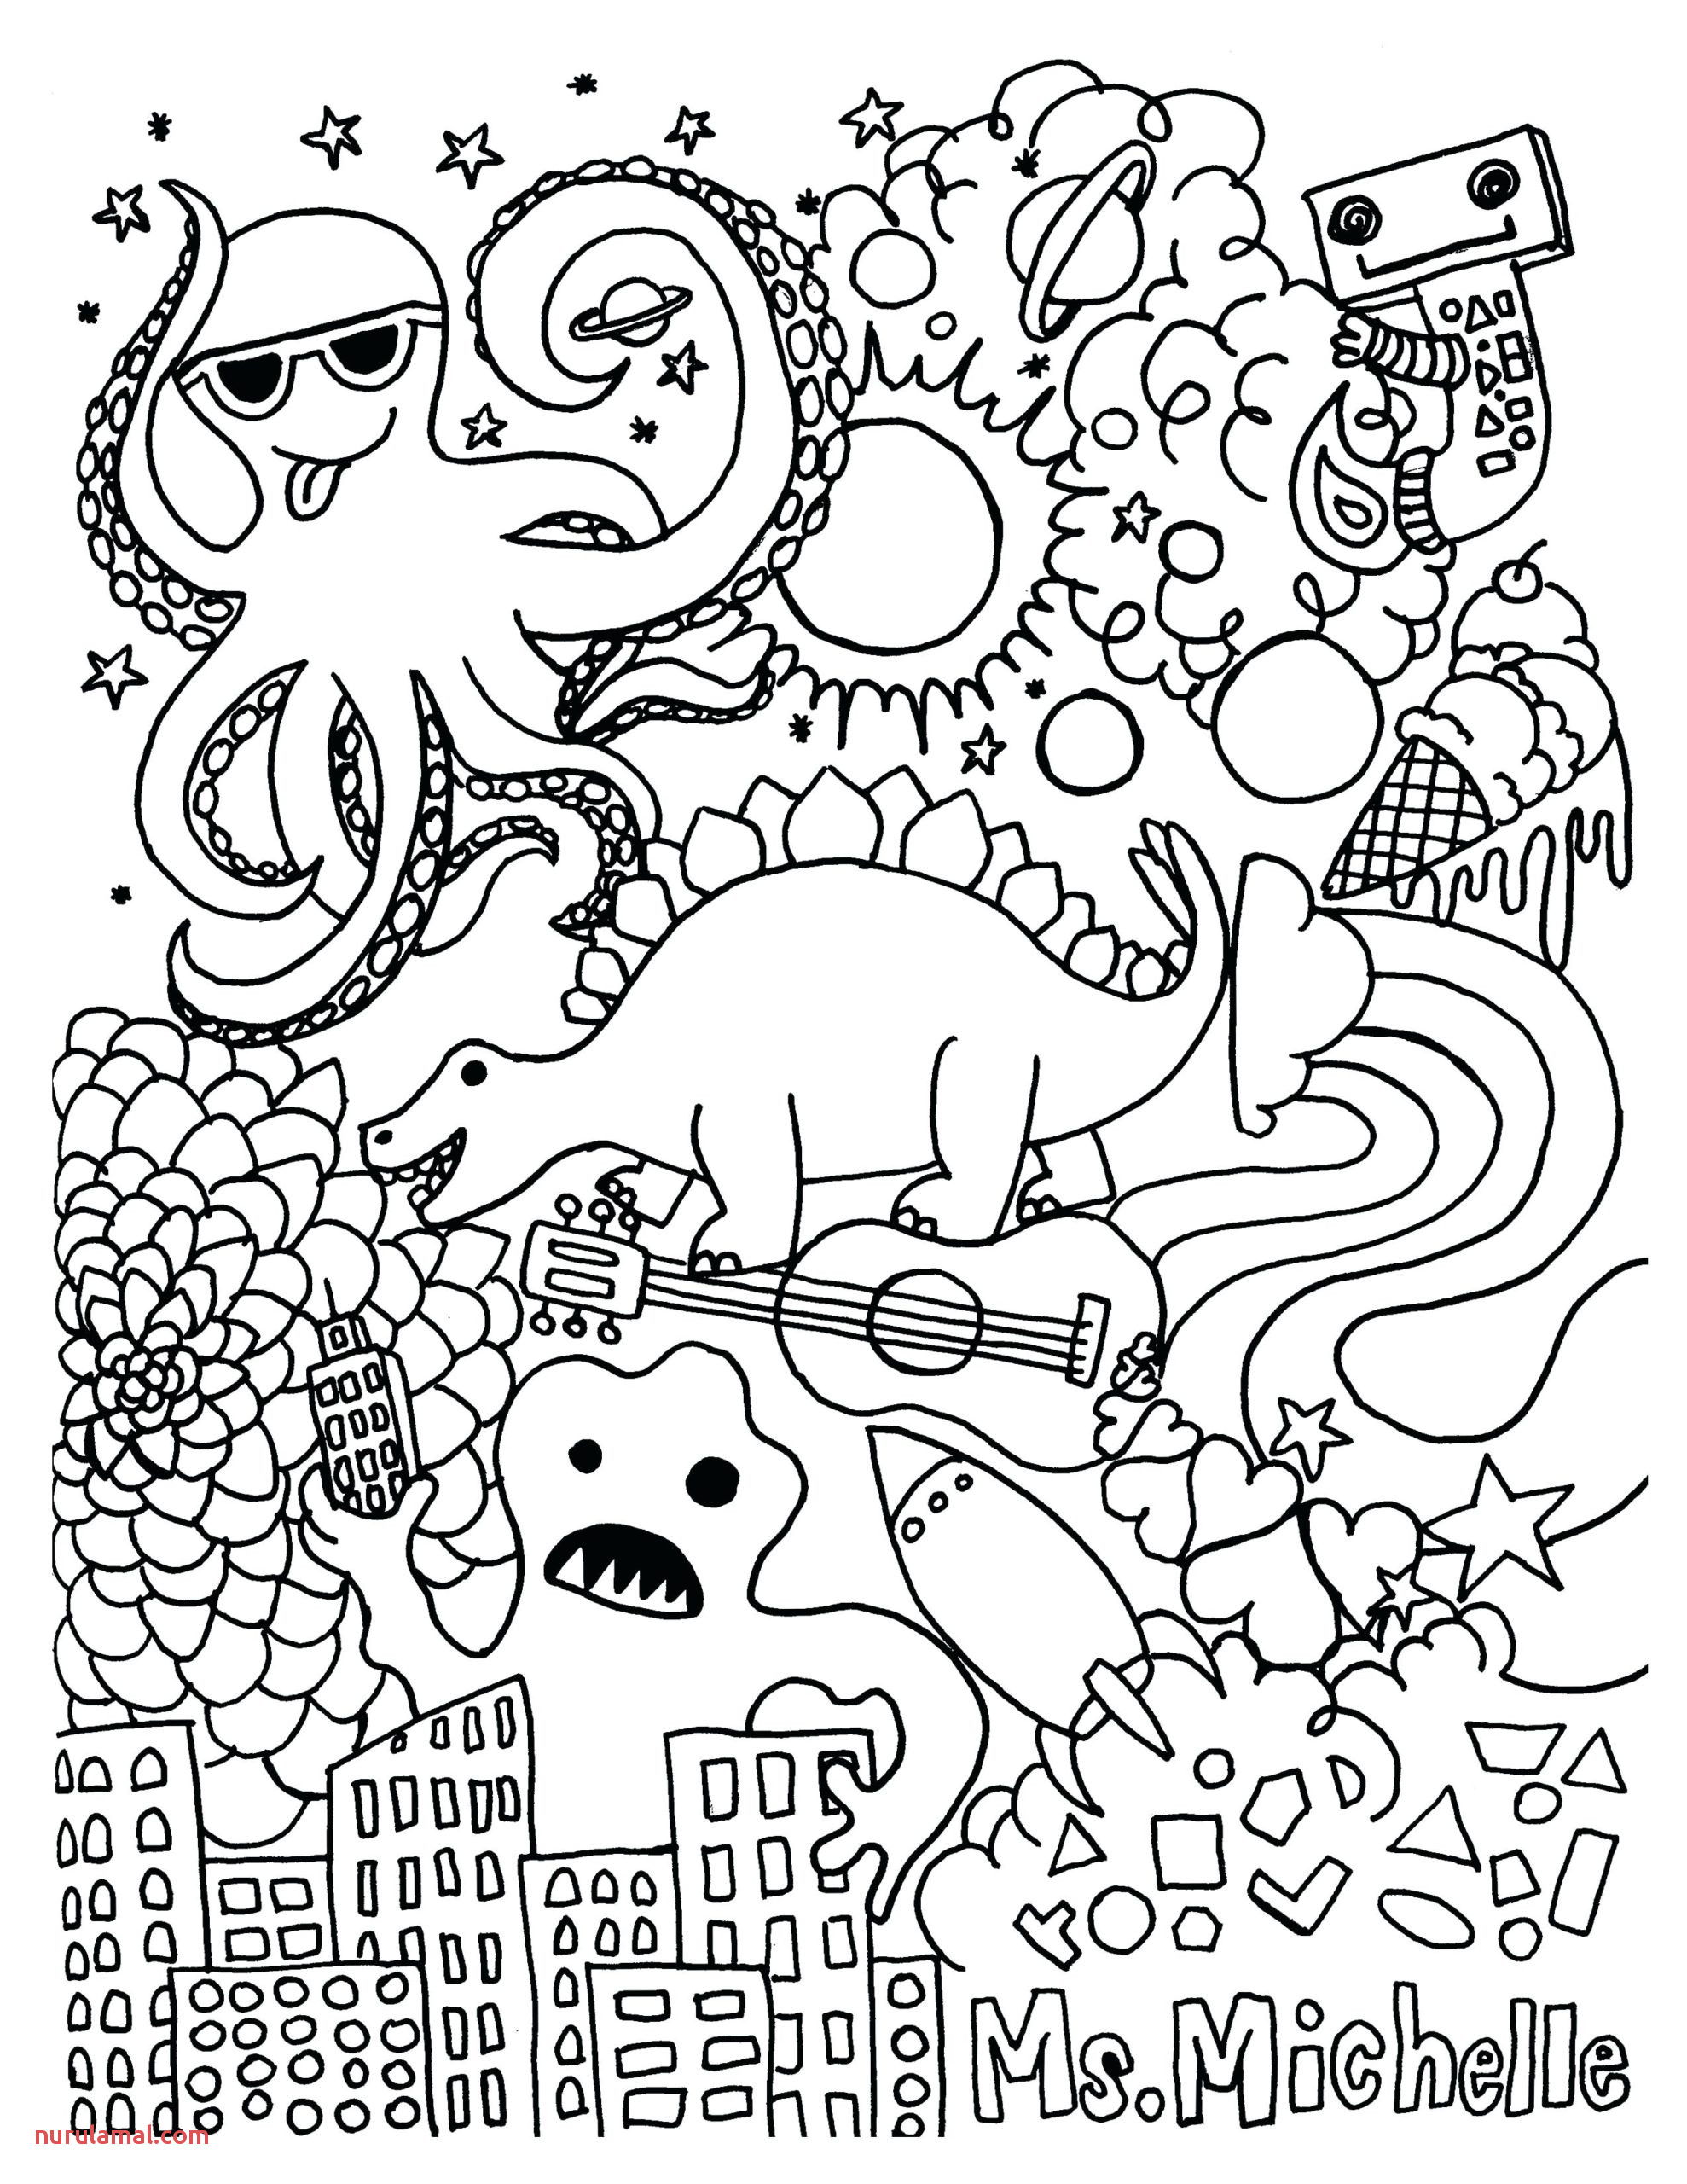 Coloring Pages Bathroom Color Free Coloring with Math